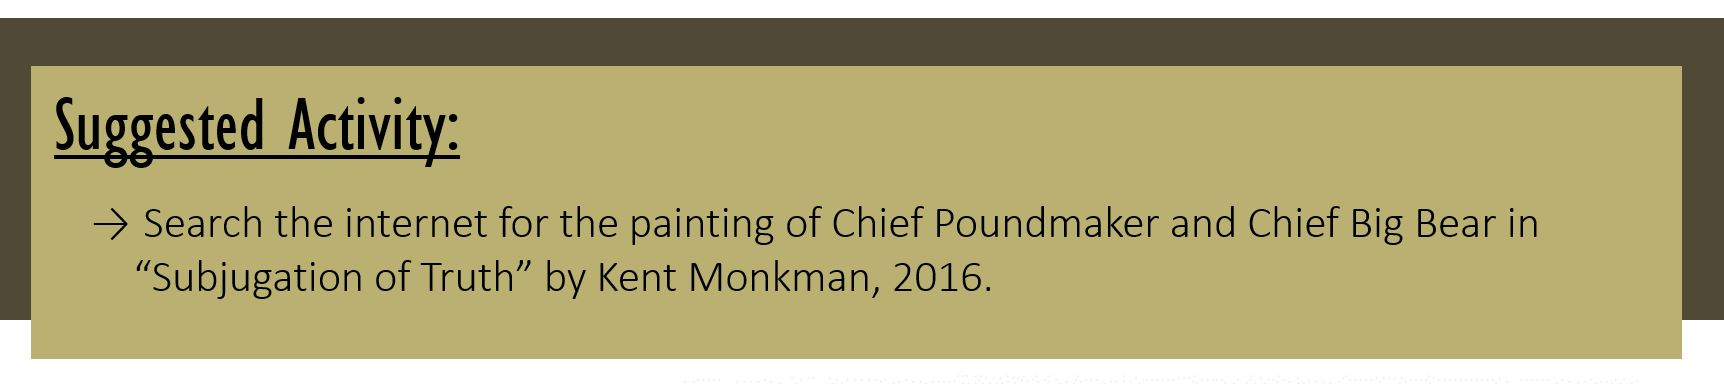 """Suggested Activity: Search the internet for the painting of Chief Poundmaker and Chief Big Bear in """"Subjugation of Truth"""" by Kent Monkman, 2016."""